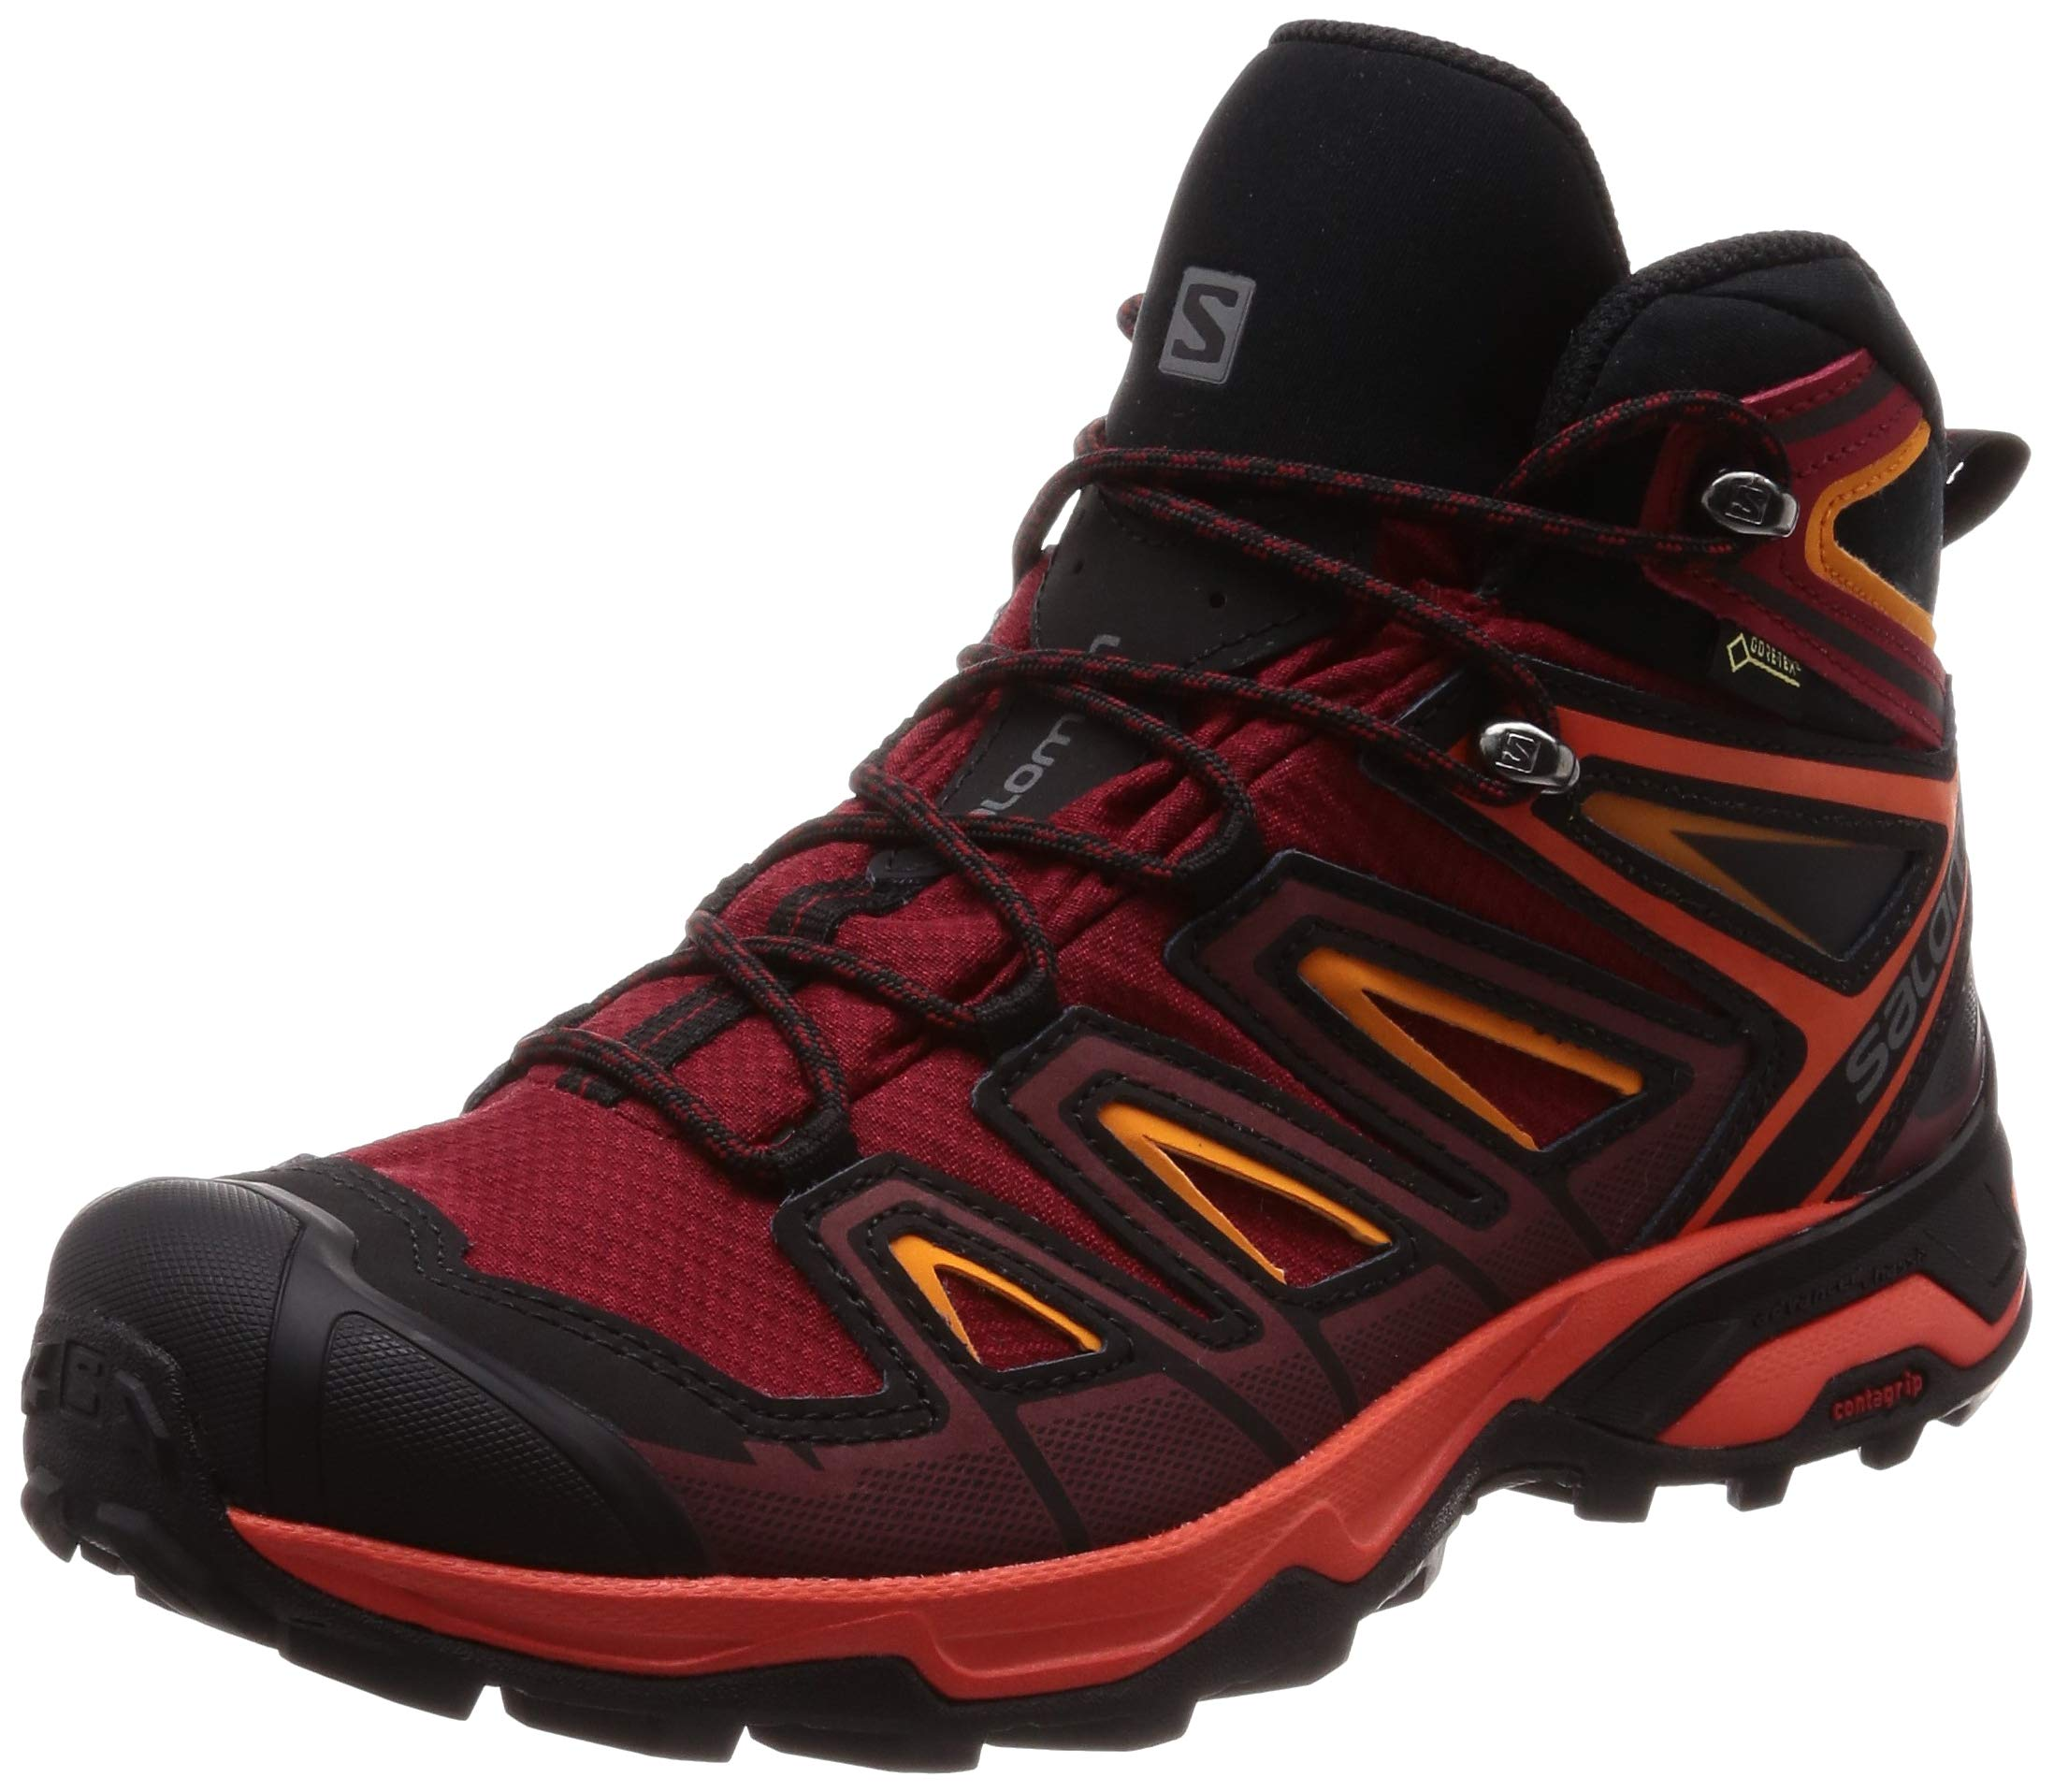 sale retailer c1fdd 19303 Salomon X Ultra 3 Mid GTX Hiking Boot - Men's Red Dahlia/Cherry  Tomato/Tangelo, US 7.0/UK 6.5